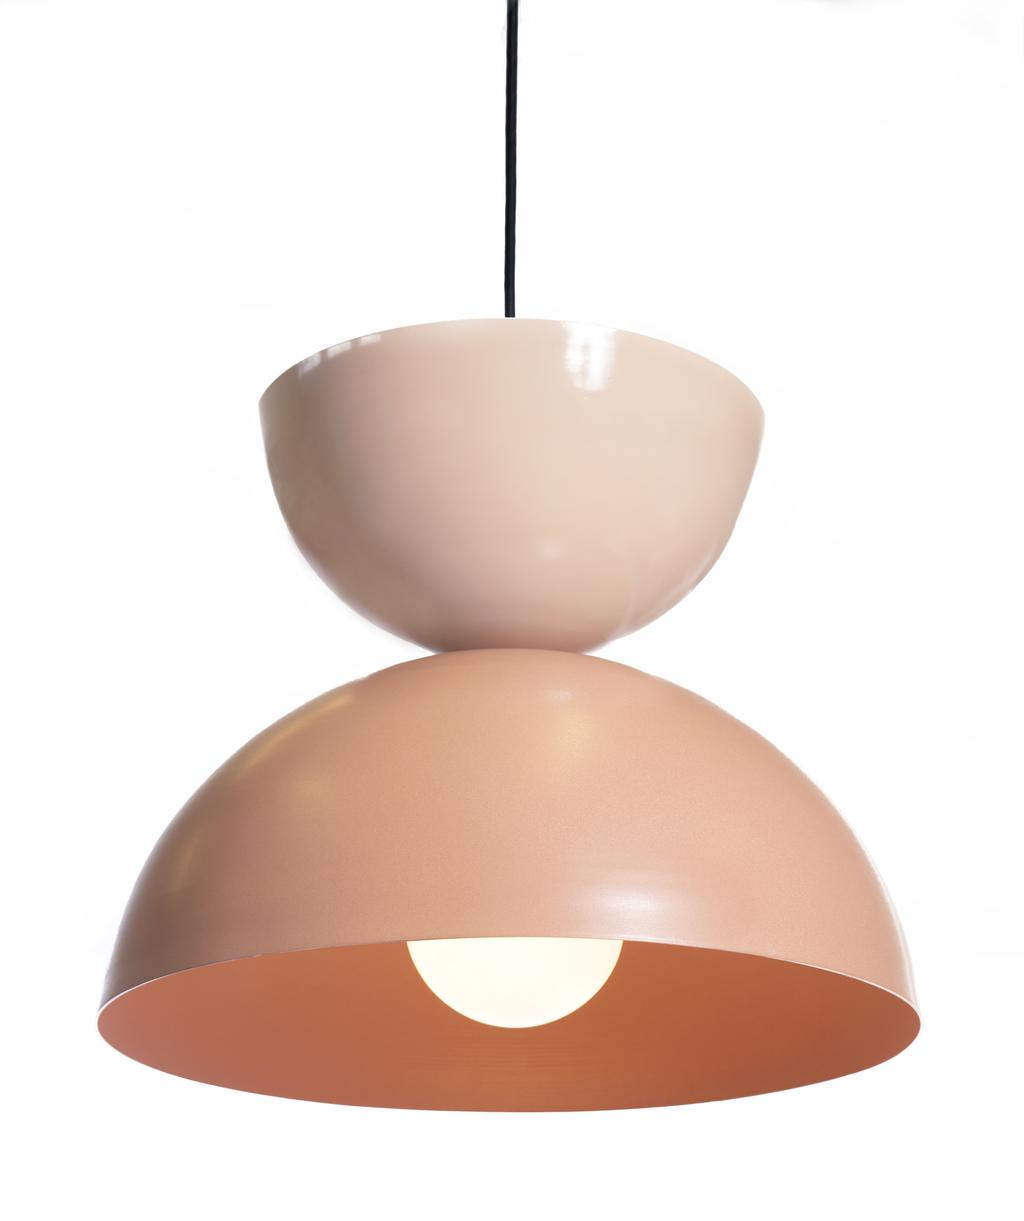 Suspension disponible chez Luminaire Authentik, 370 $, luminaireauthentik.com